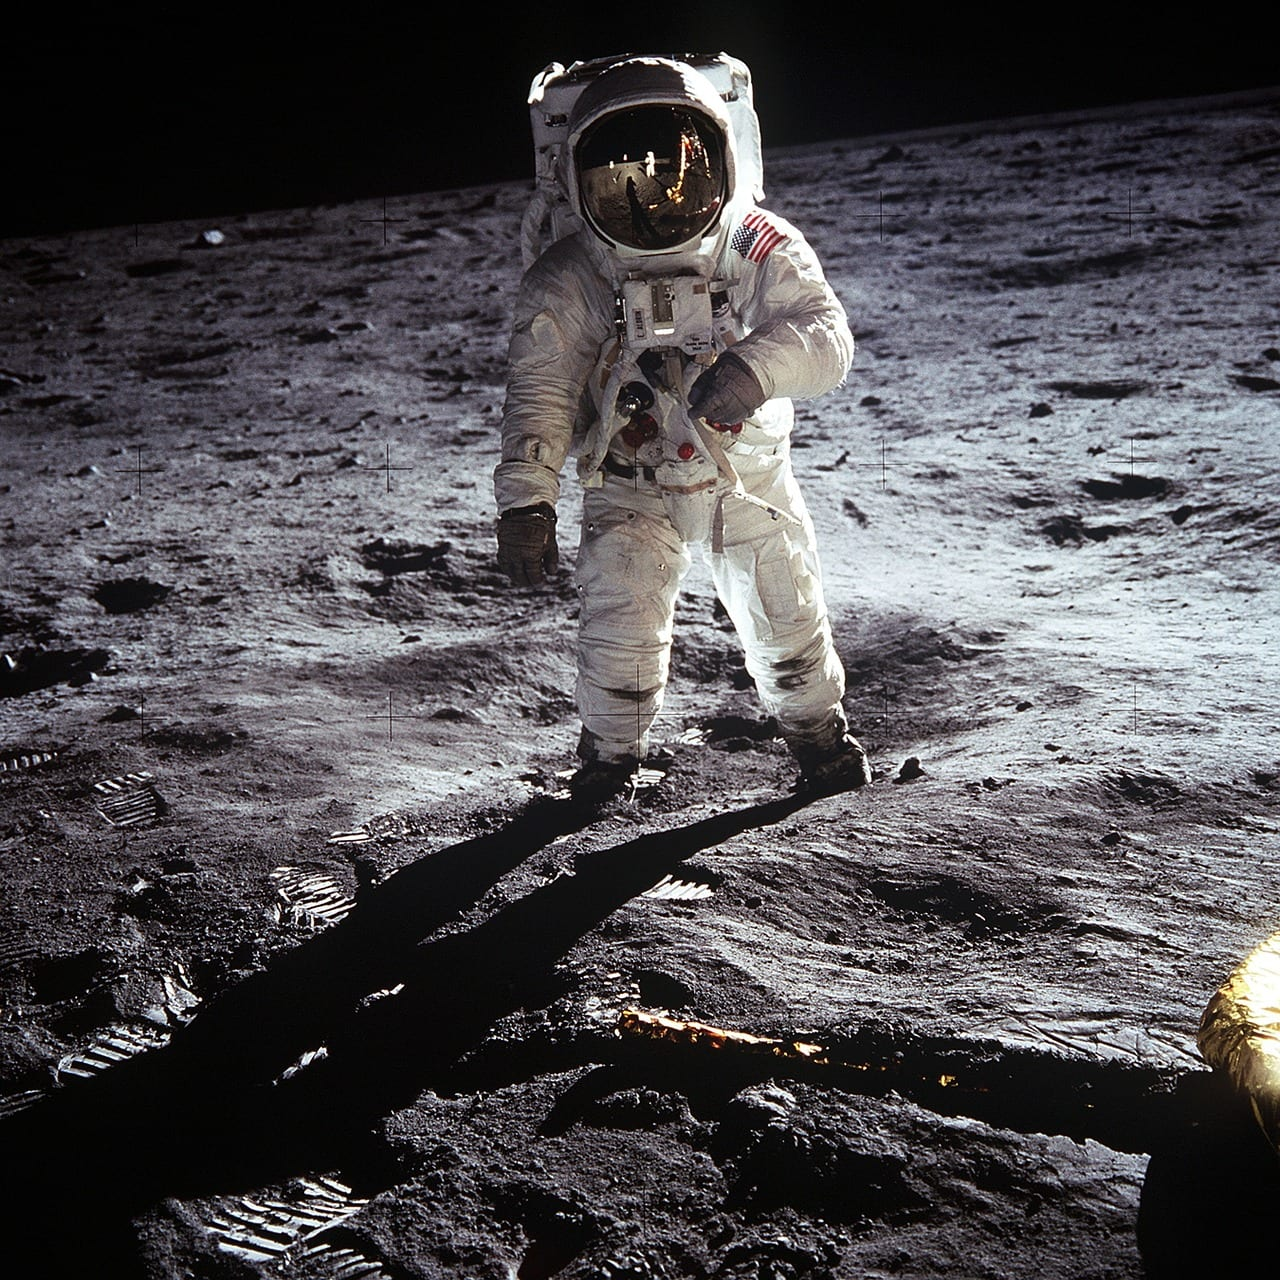 This Year Is The 50th Anniversary Of Apollo 11's Moon Landing – Here Are Related Resources